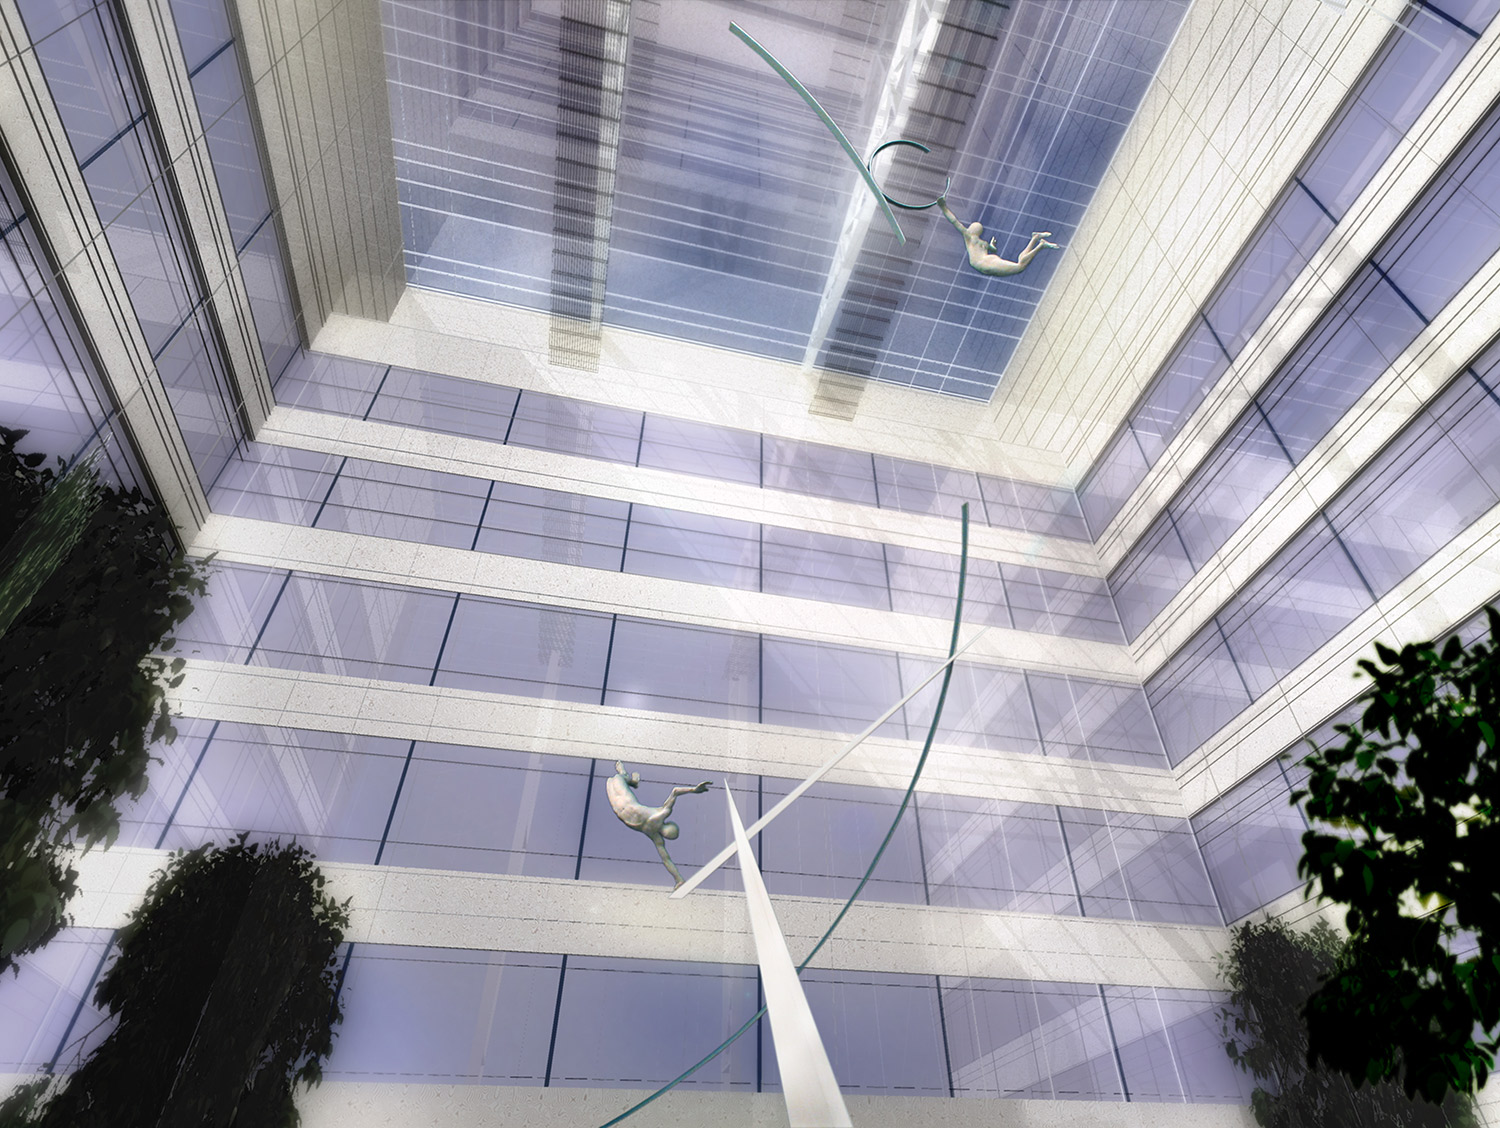 Archimedes Dream. 7. Canary Wharf. Pierre Diamantopoulo. Copyright.jpg